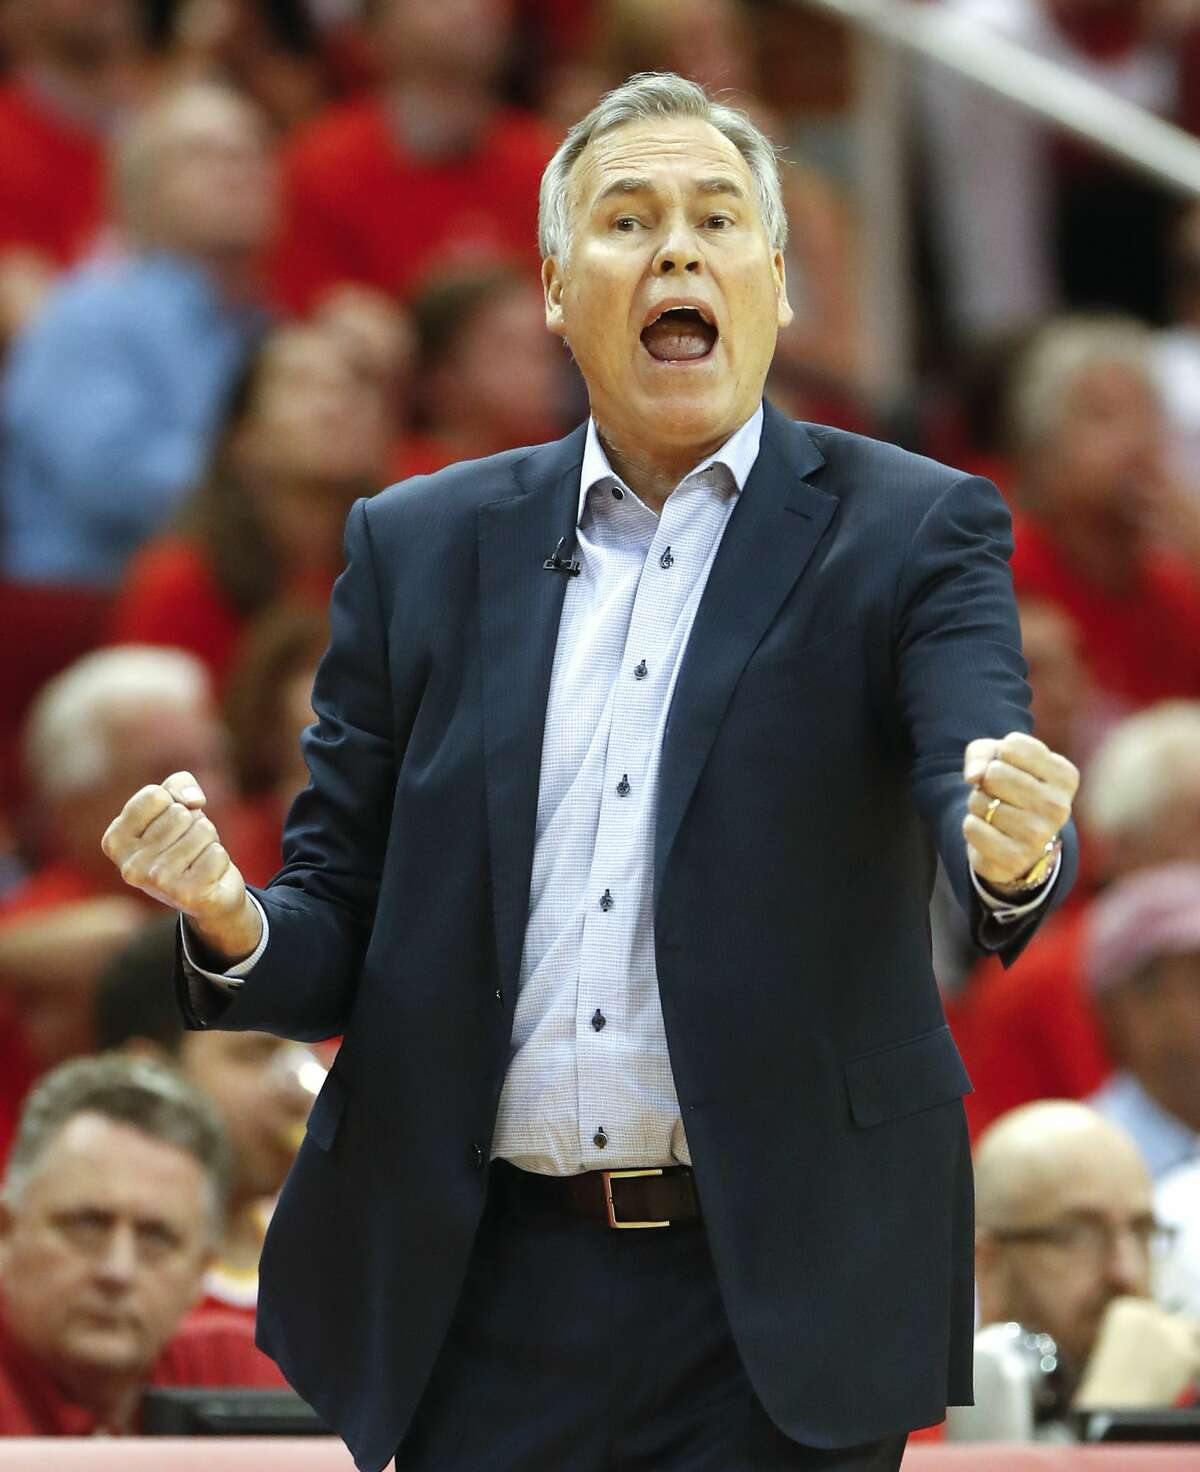 Houston Rockets head coach Mike D'Antoni yells from the bench during the second half of Game 6 of the NBA Western Conference semifinals against the Golden State Warriors at Toyota Center on Friday, May 10, 2019, in Houston.